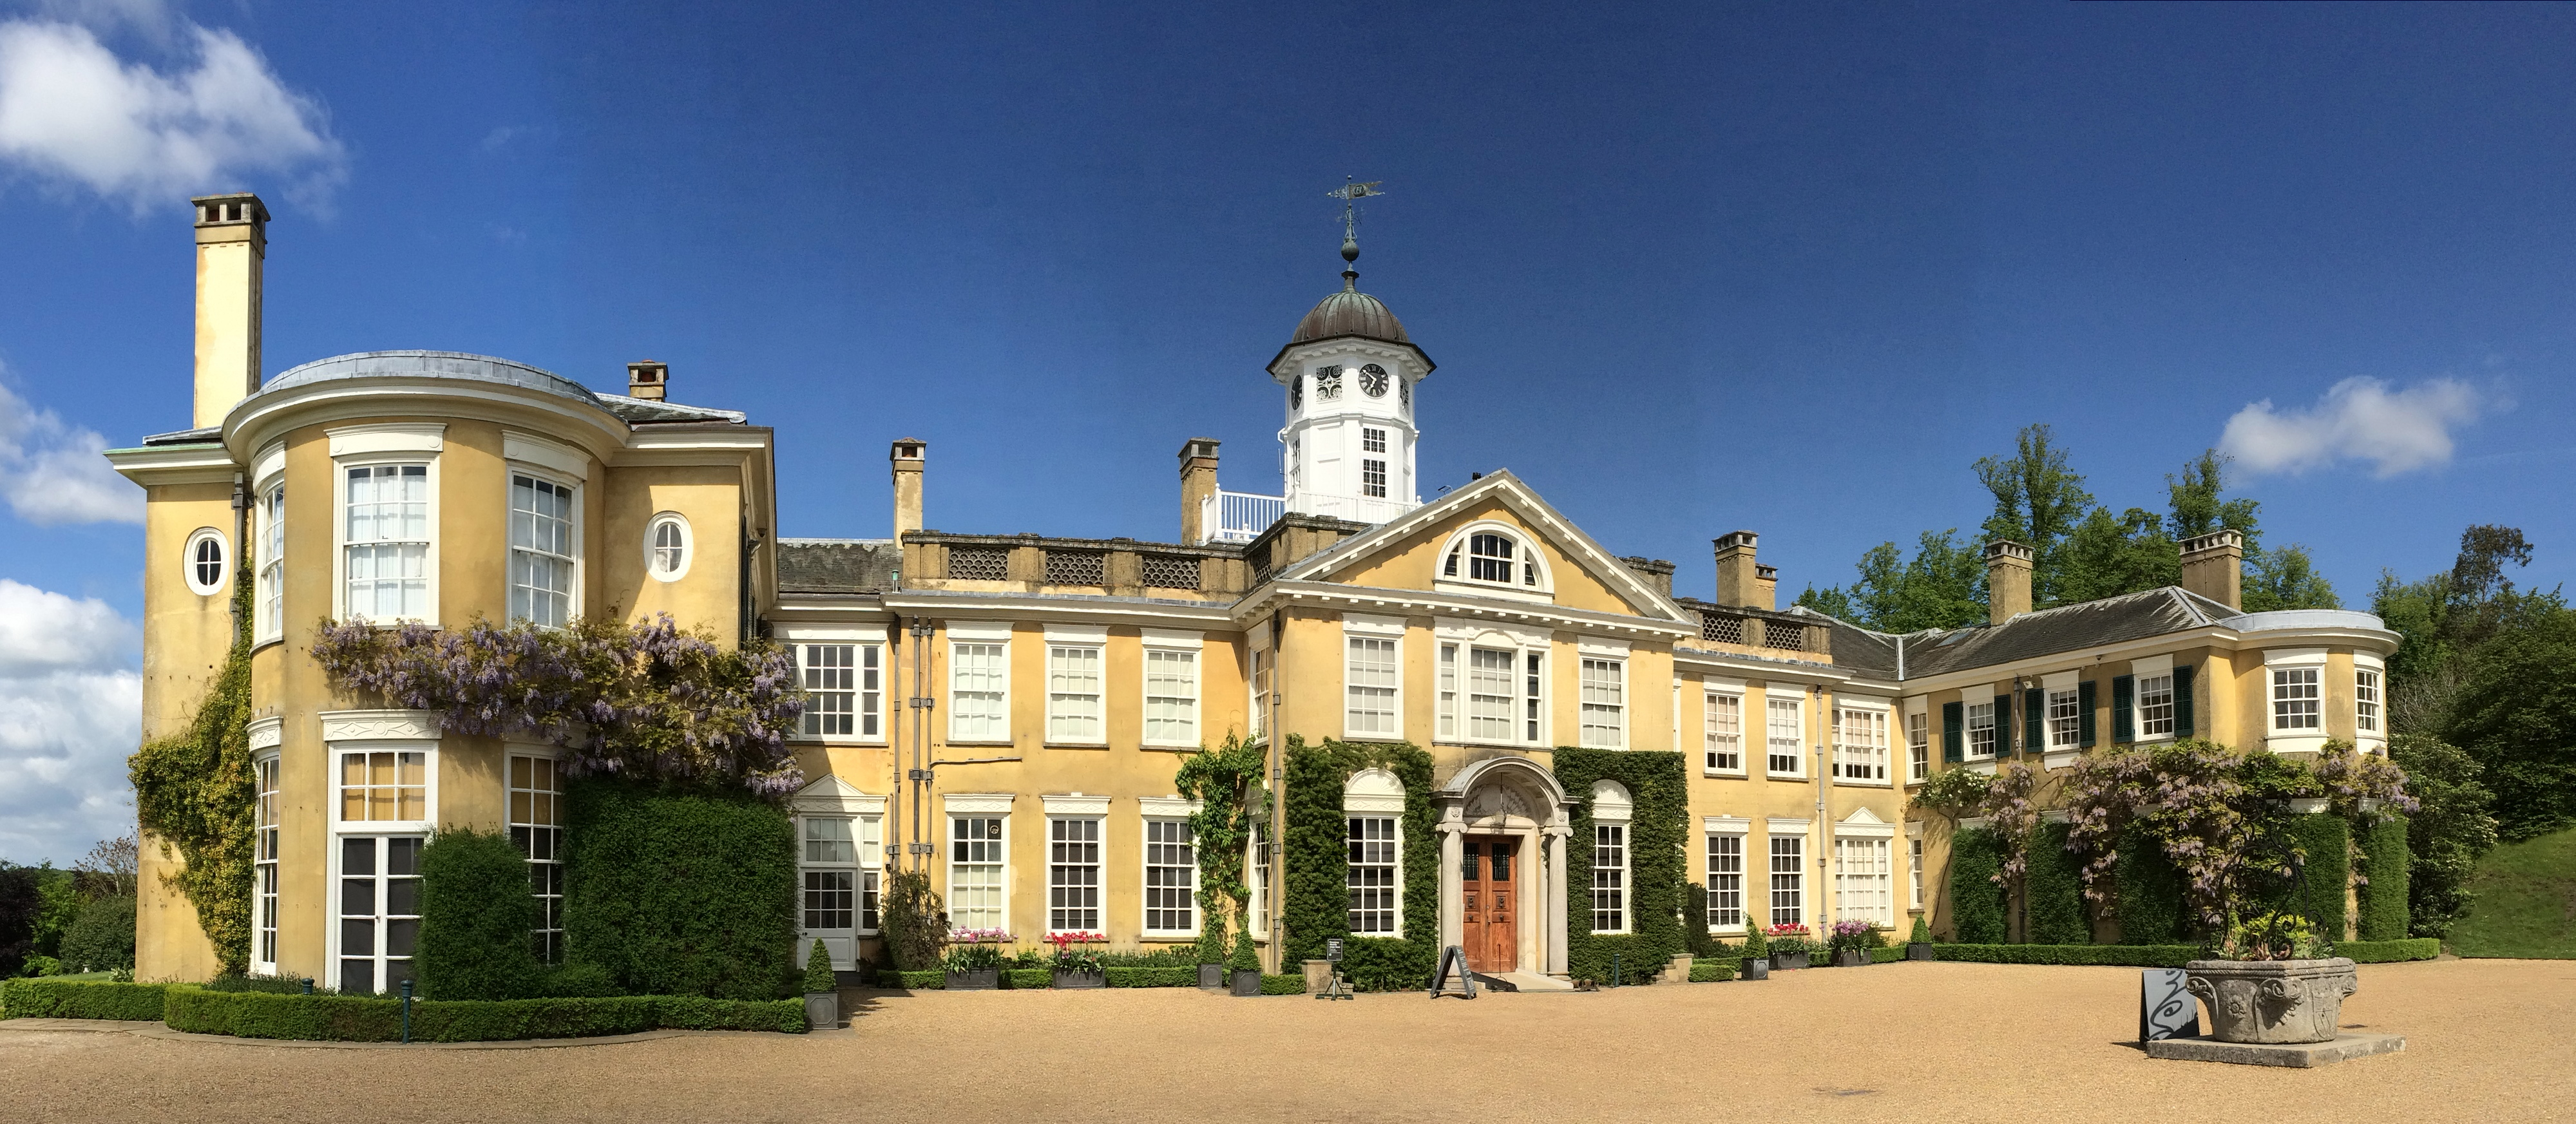 Polesden Lacey house